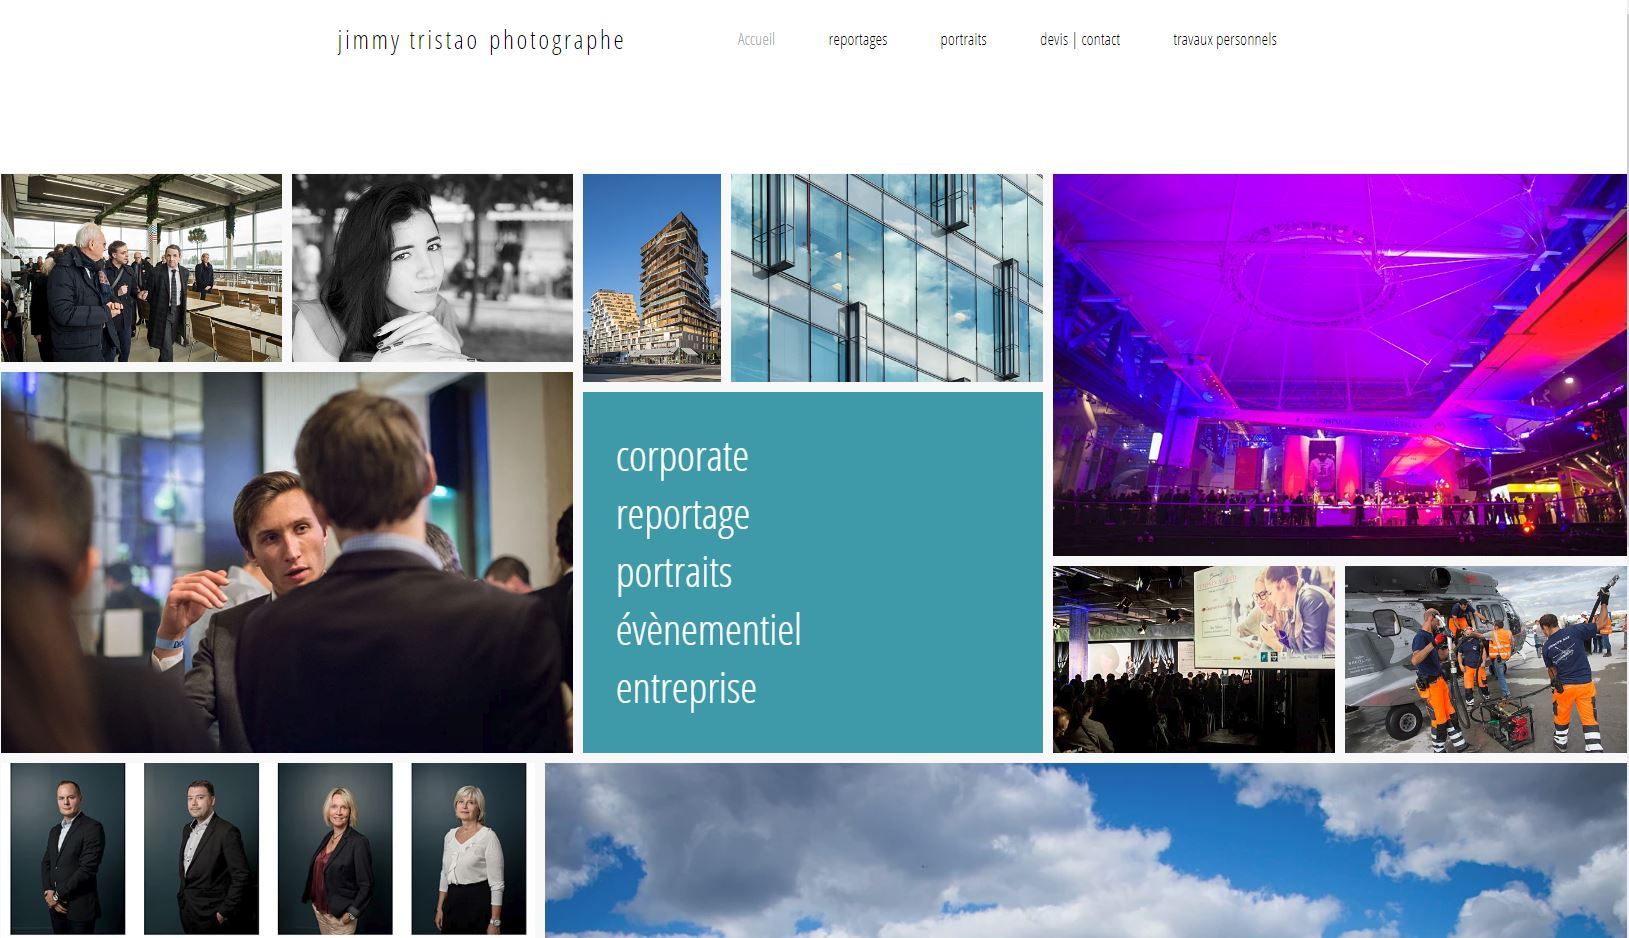 Détails : Jimmy Tristao photographe Coporate